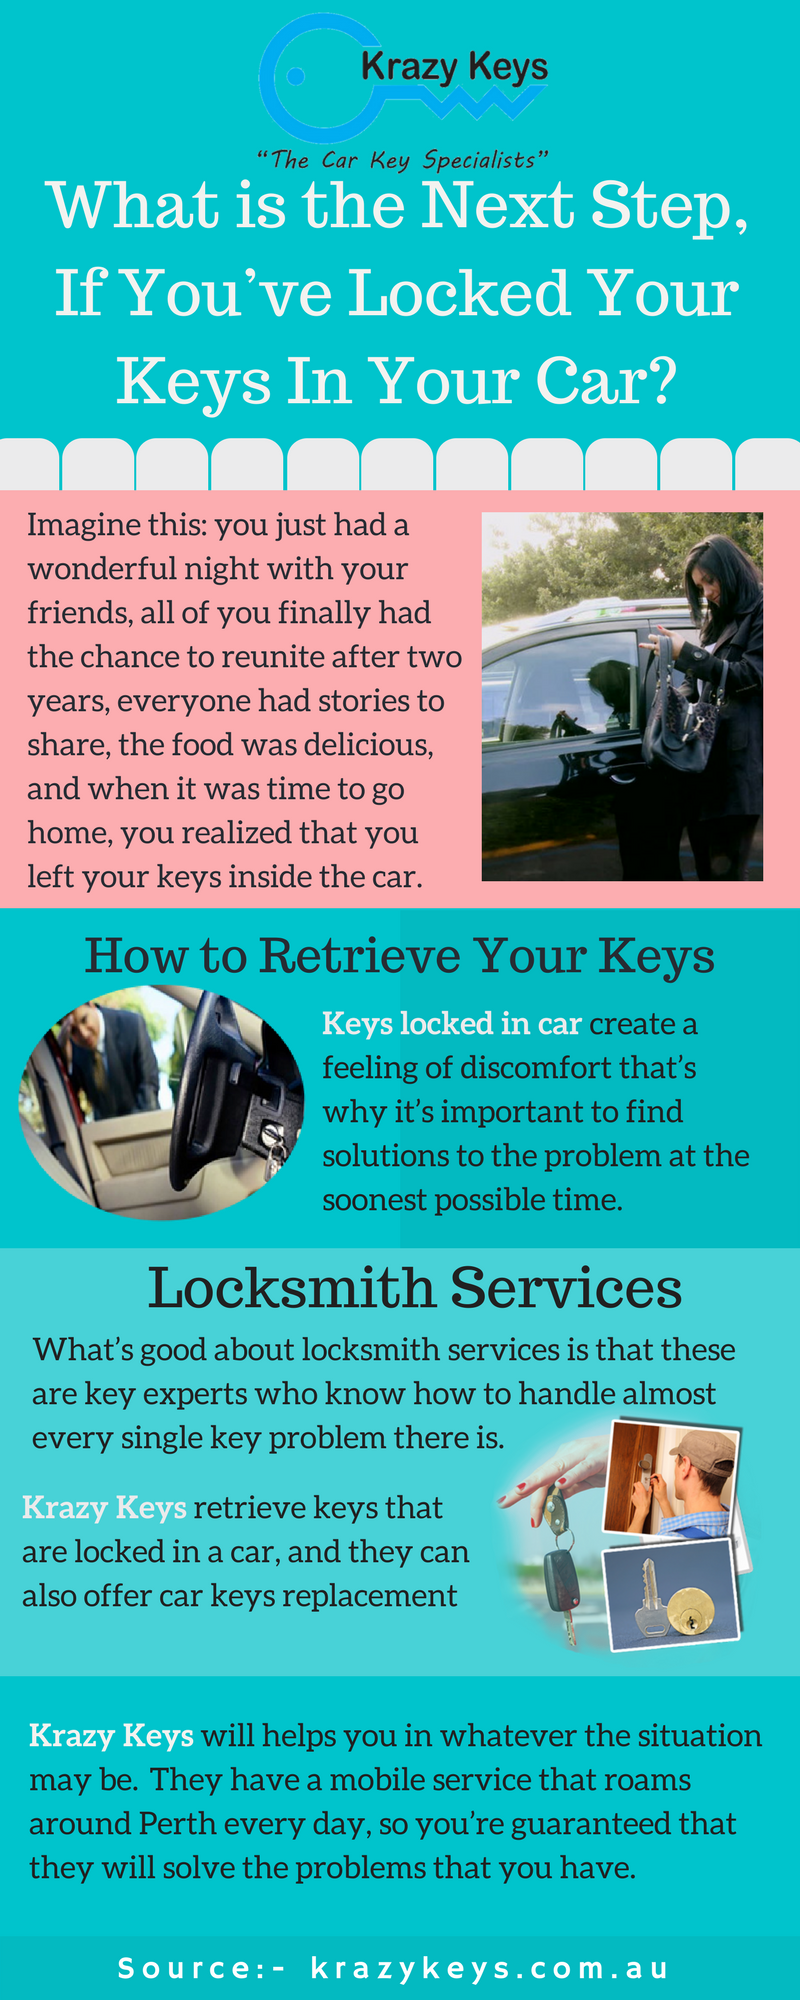 Keys locked in car automotive locksmith in phoenix arizona - Whether You Are Locked Out Of Your Car Need Duplicate Keys Krazy Keys Have